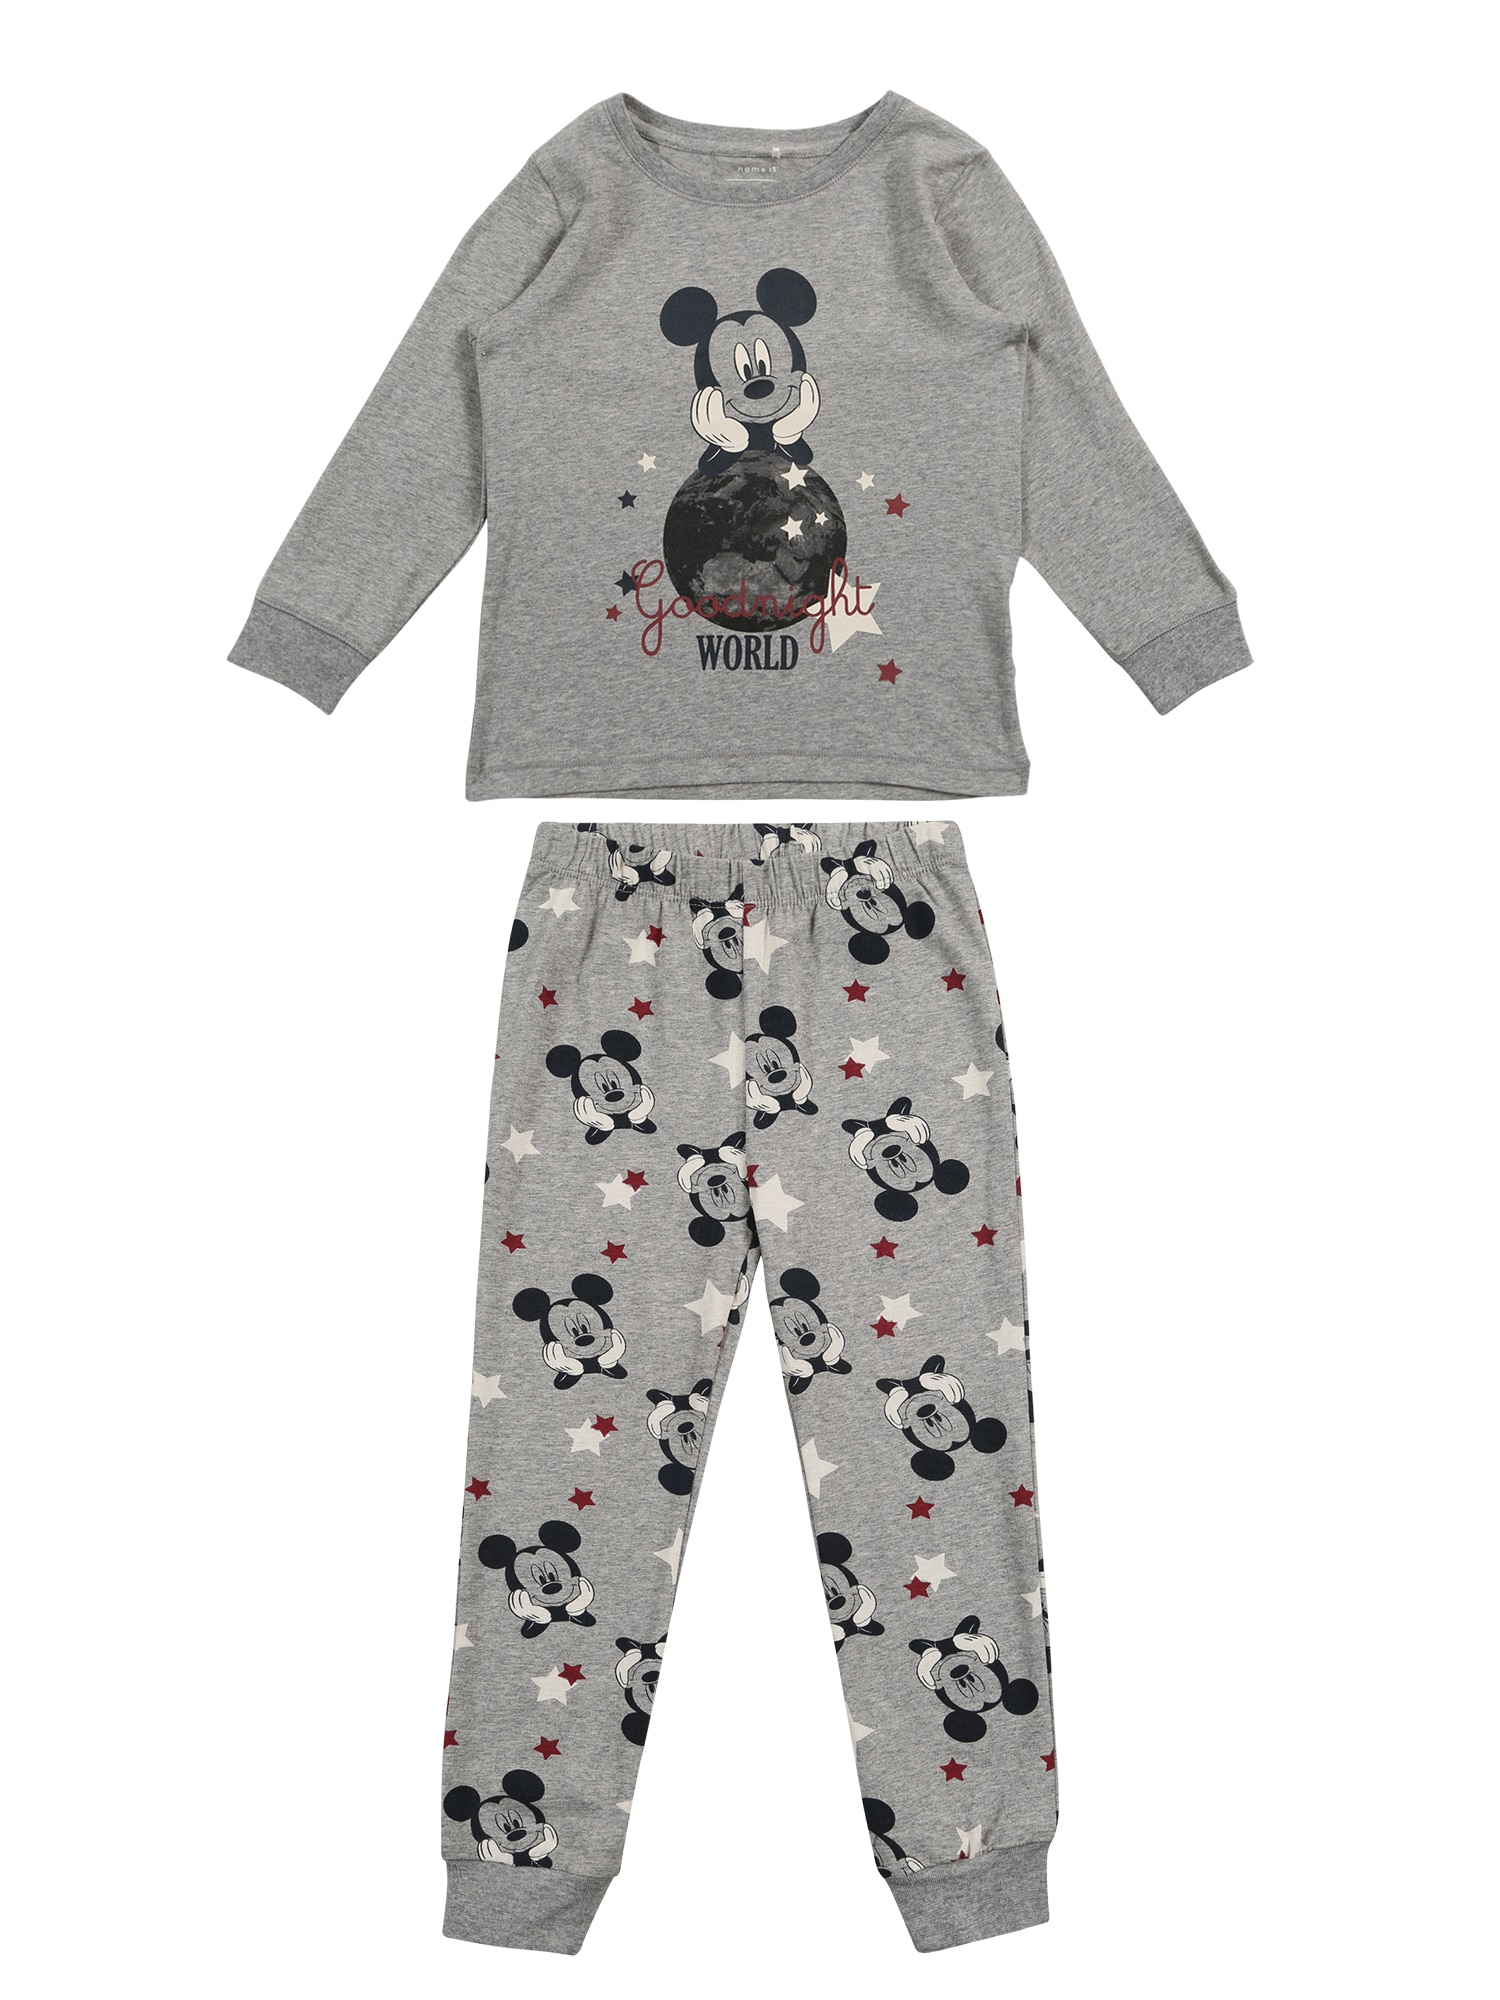 Pyžamo NMMMICKEY VINNY LS NIGHTWEAR šedá mix barev NAME IT